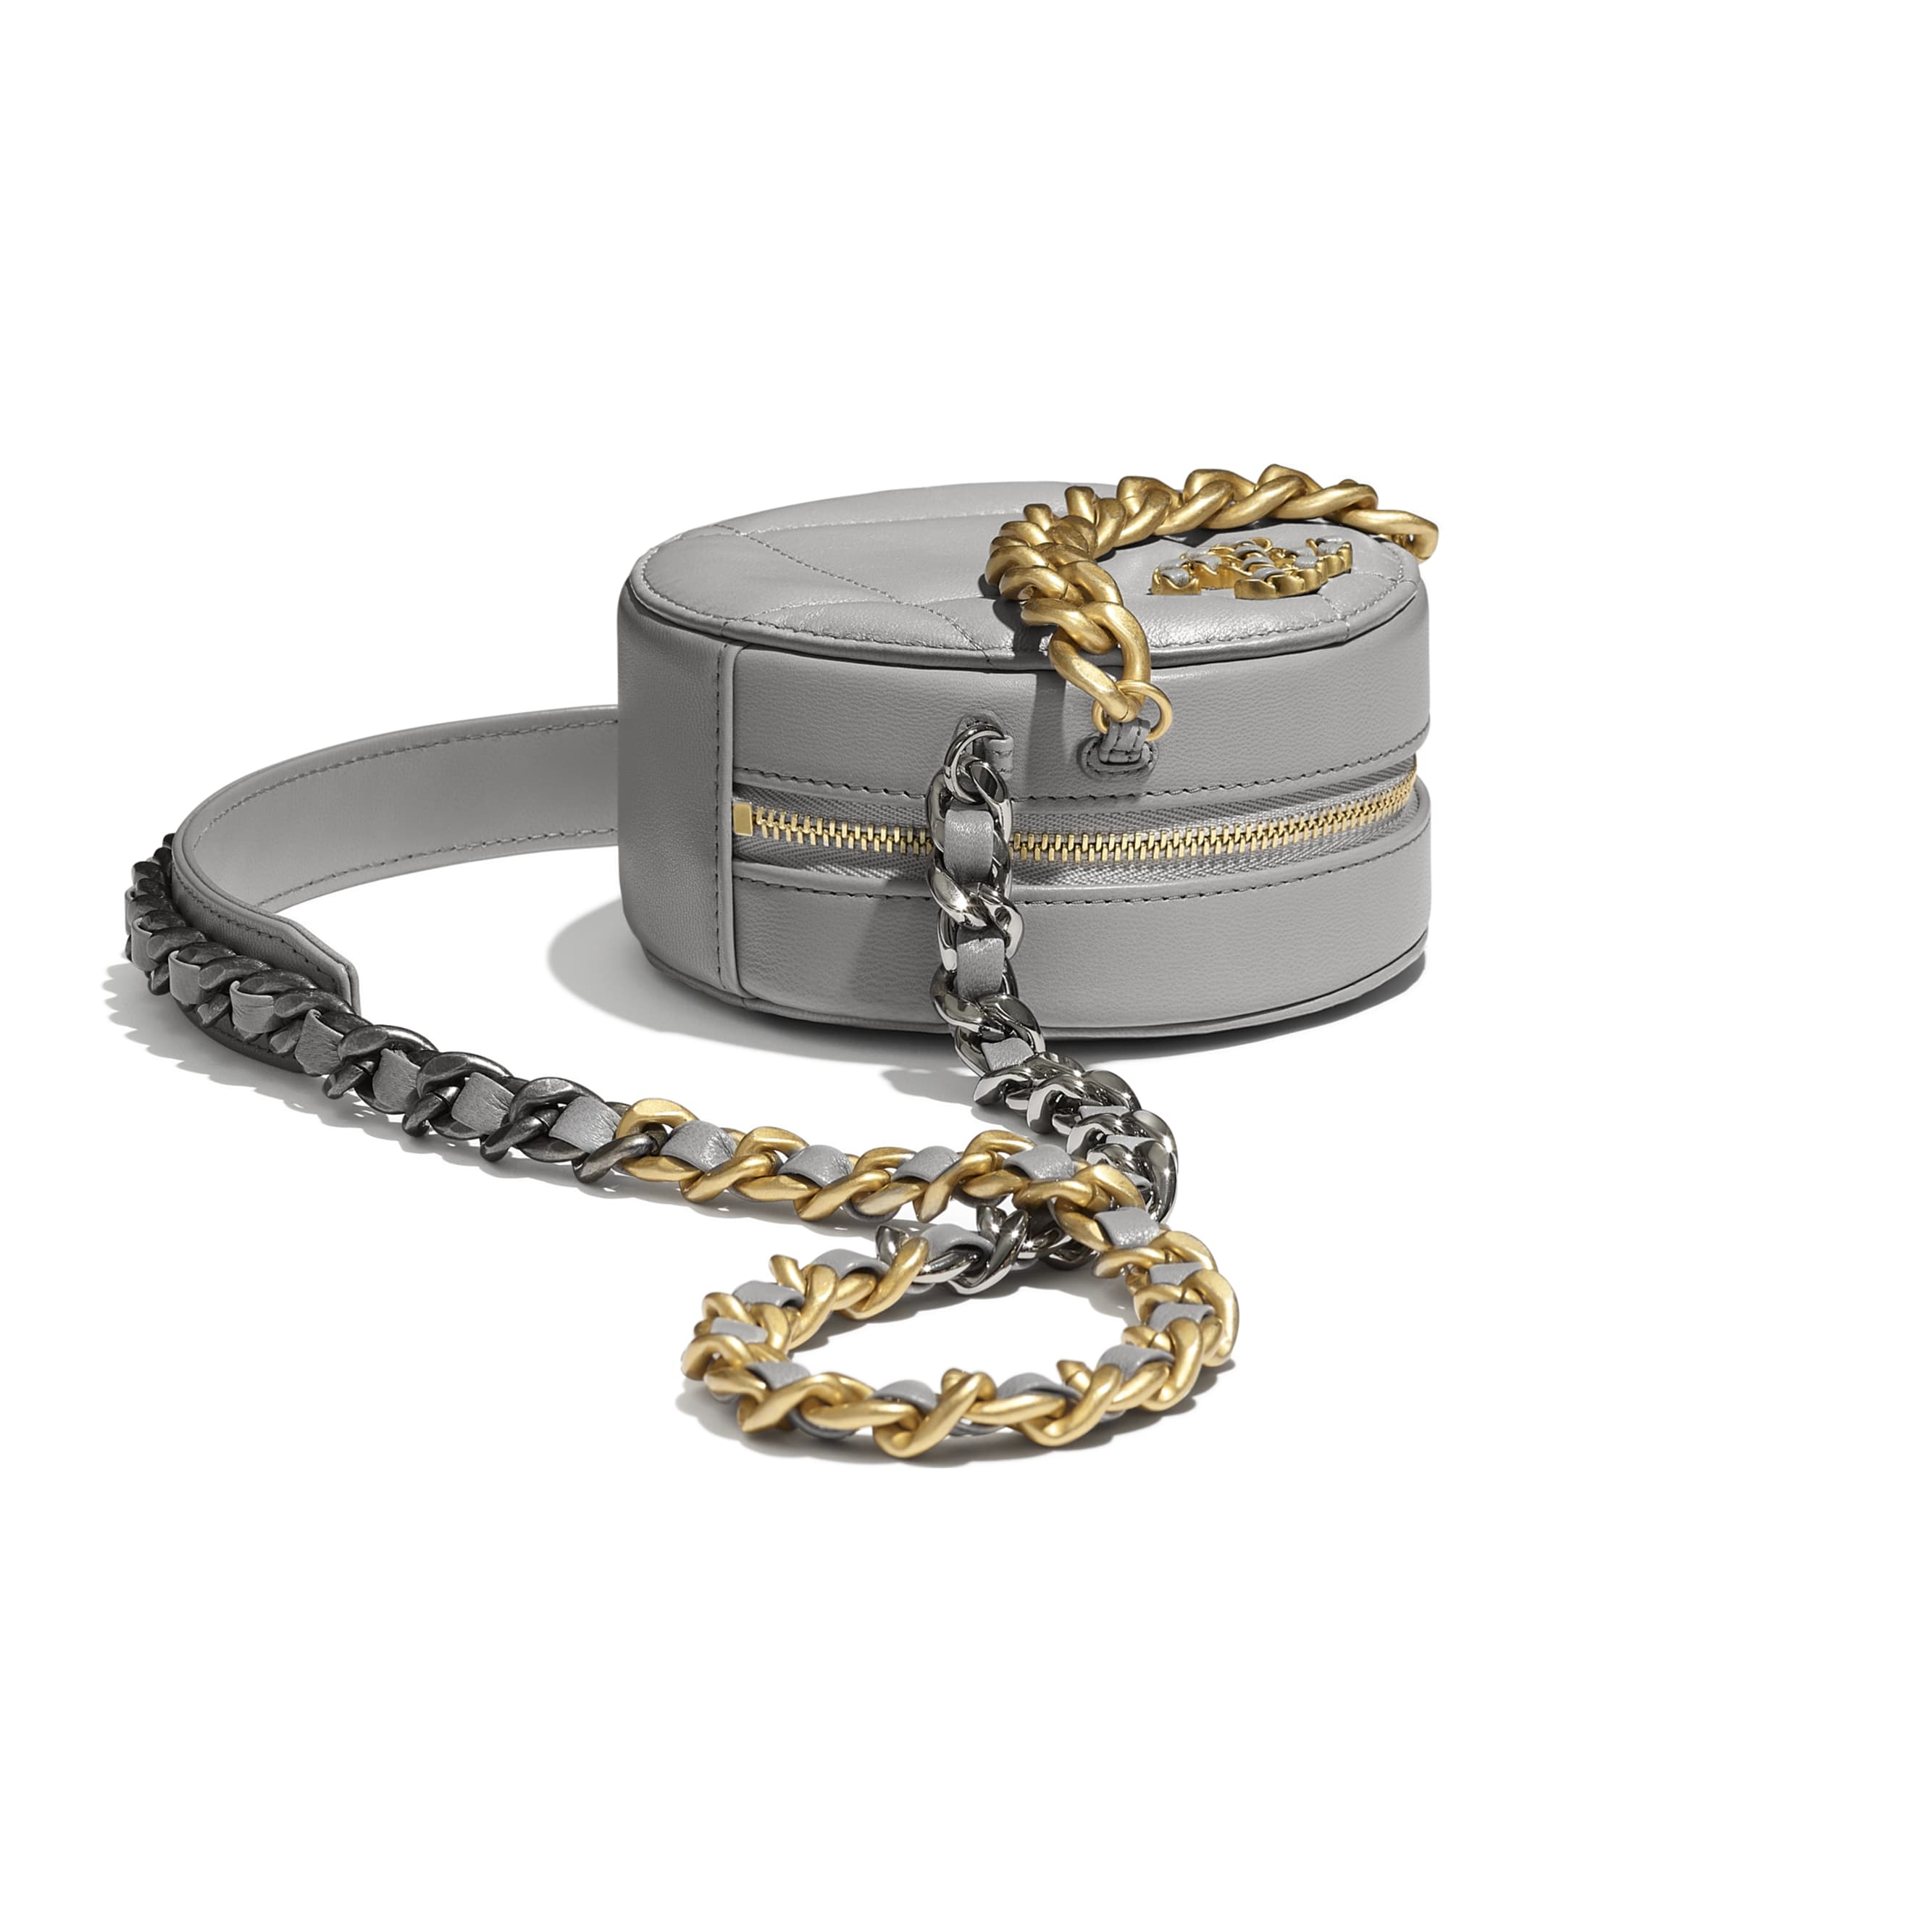 CHANEL 19 Clutch with Chain - Grey - Shiny Goatskin, Gold-Tone, Silver-Tone & Ruthenium-Finish Metal - CHANEL - Extra view - see standard sized version